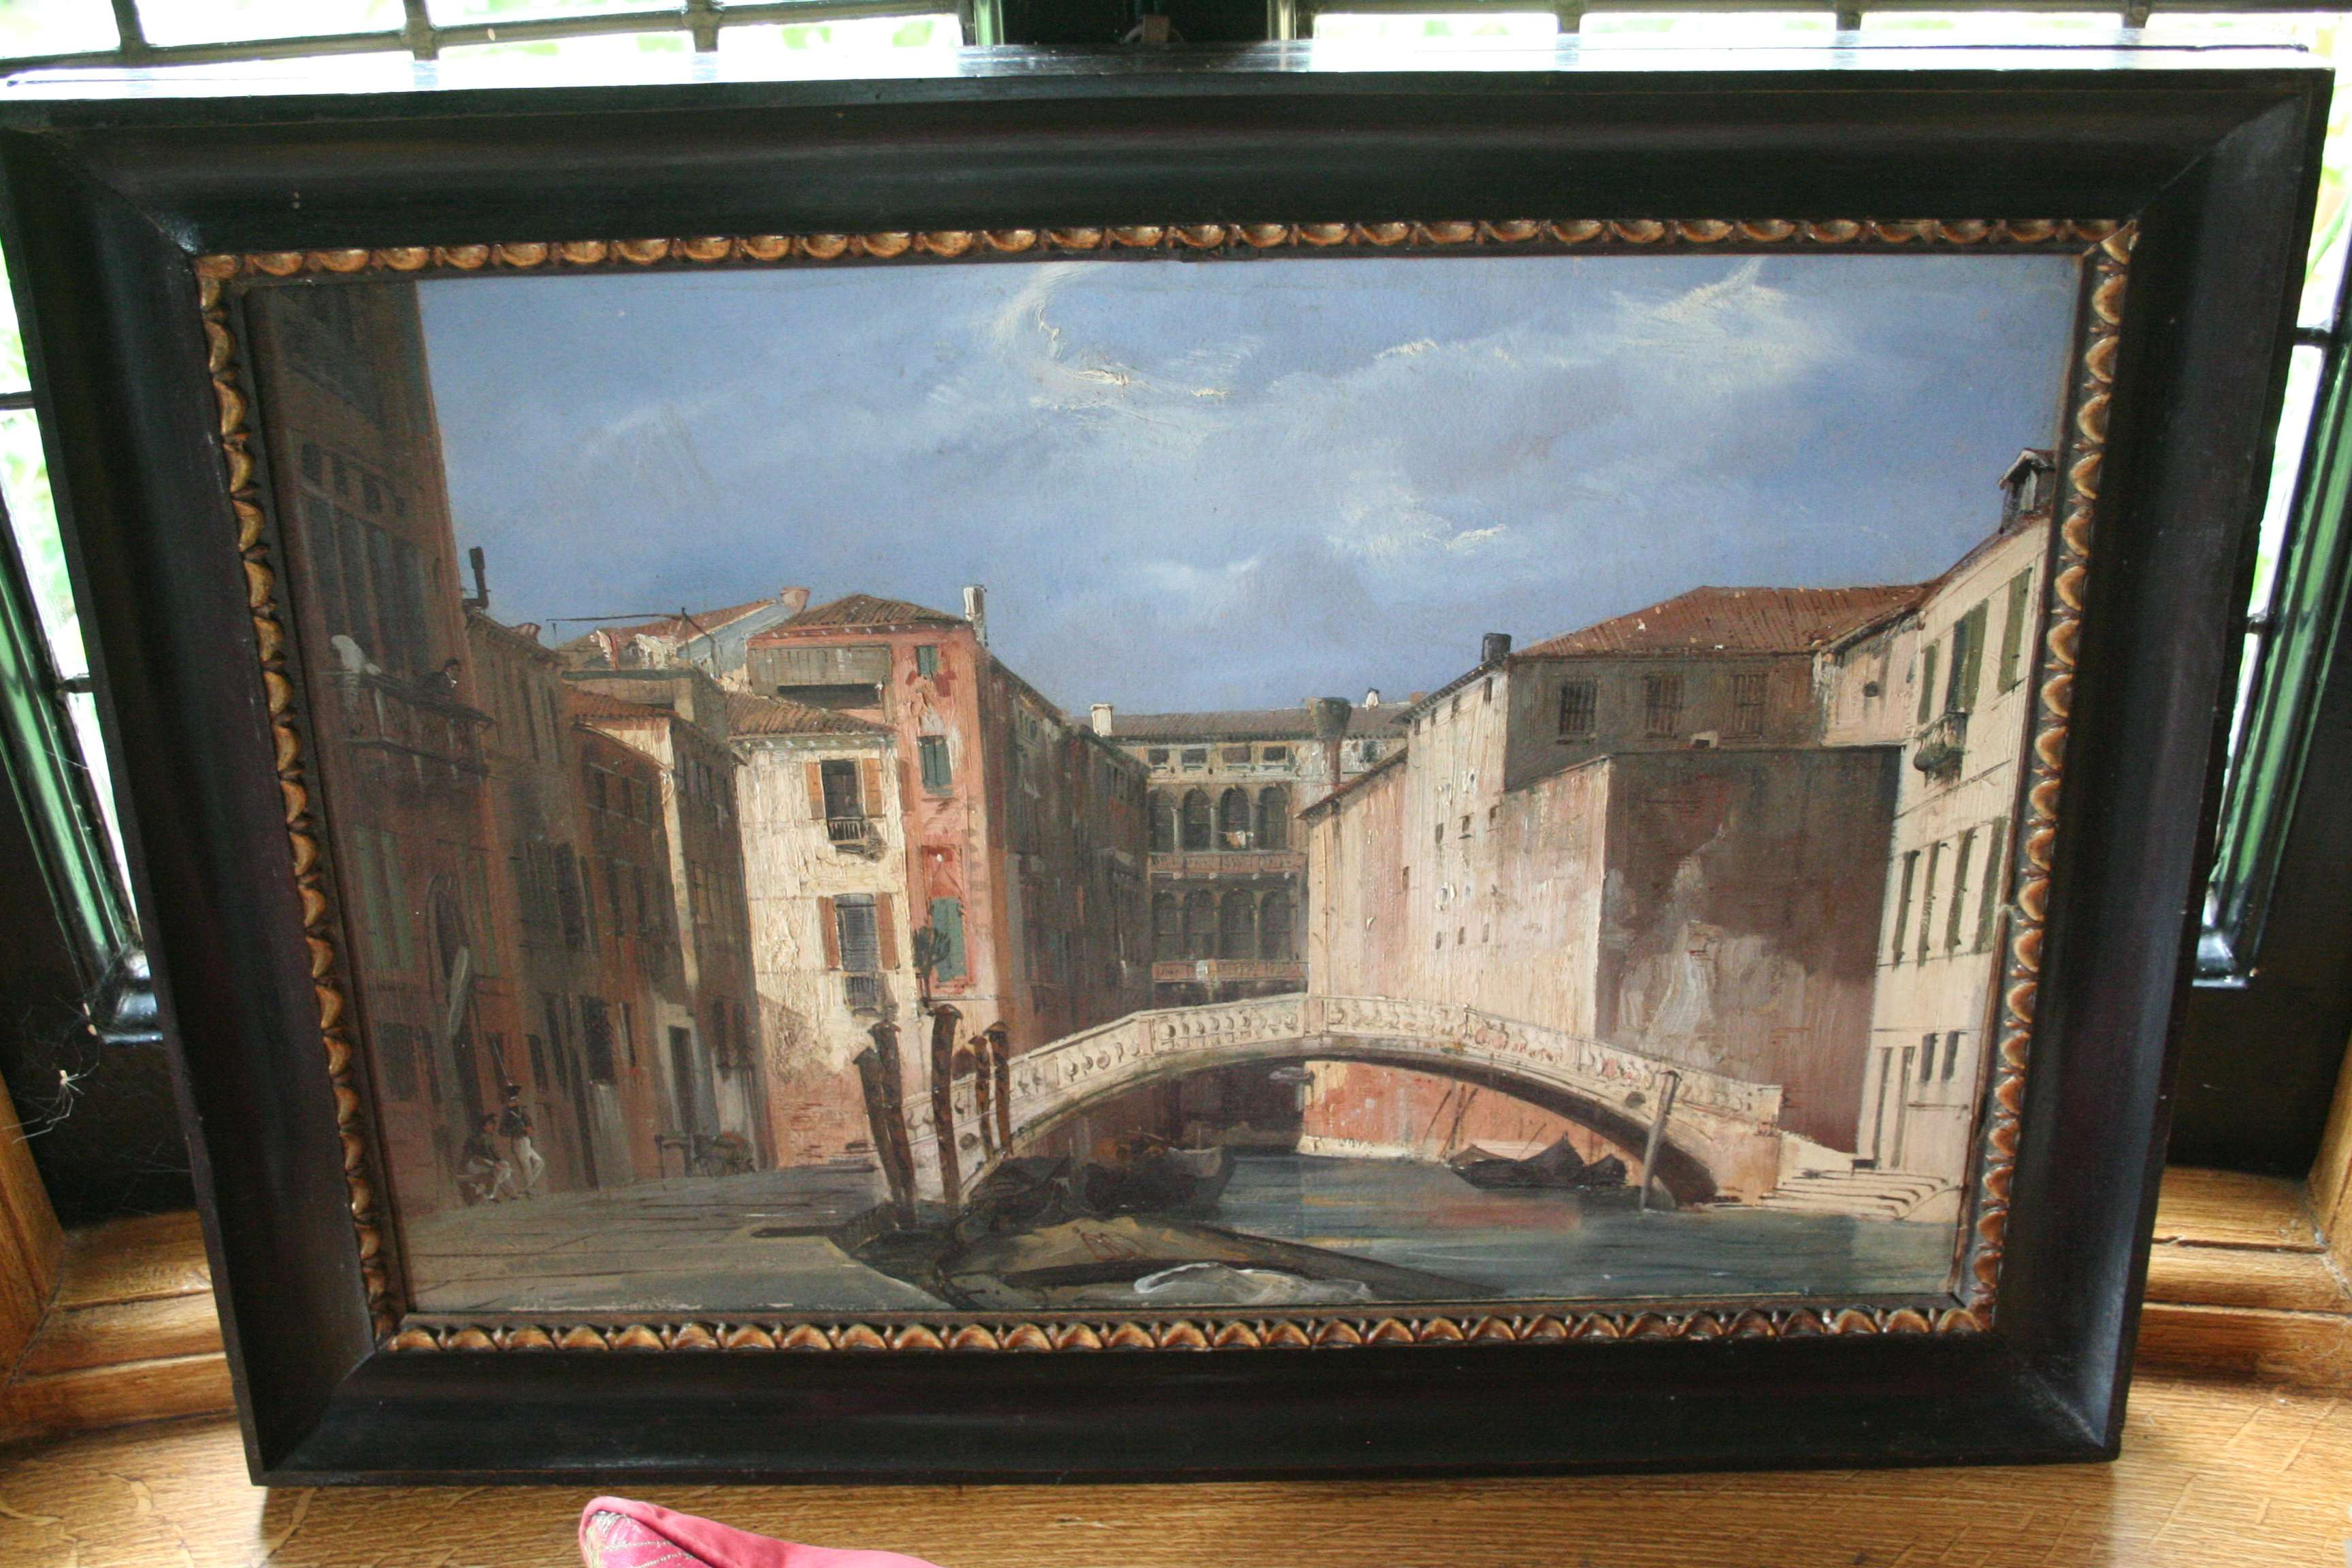 https://0201.nccdn.net/1_2/000/000/0ba/169/Ippolito-Caffi---View-of-a-Venetian-Canal--from-Caiati--3456x2304.jpg